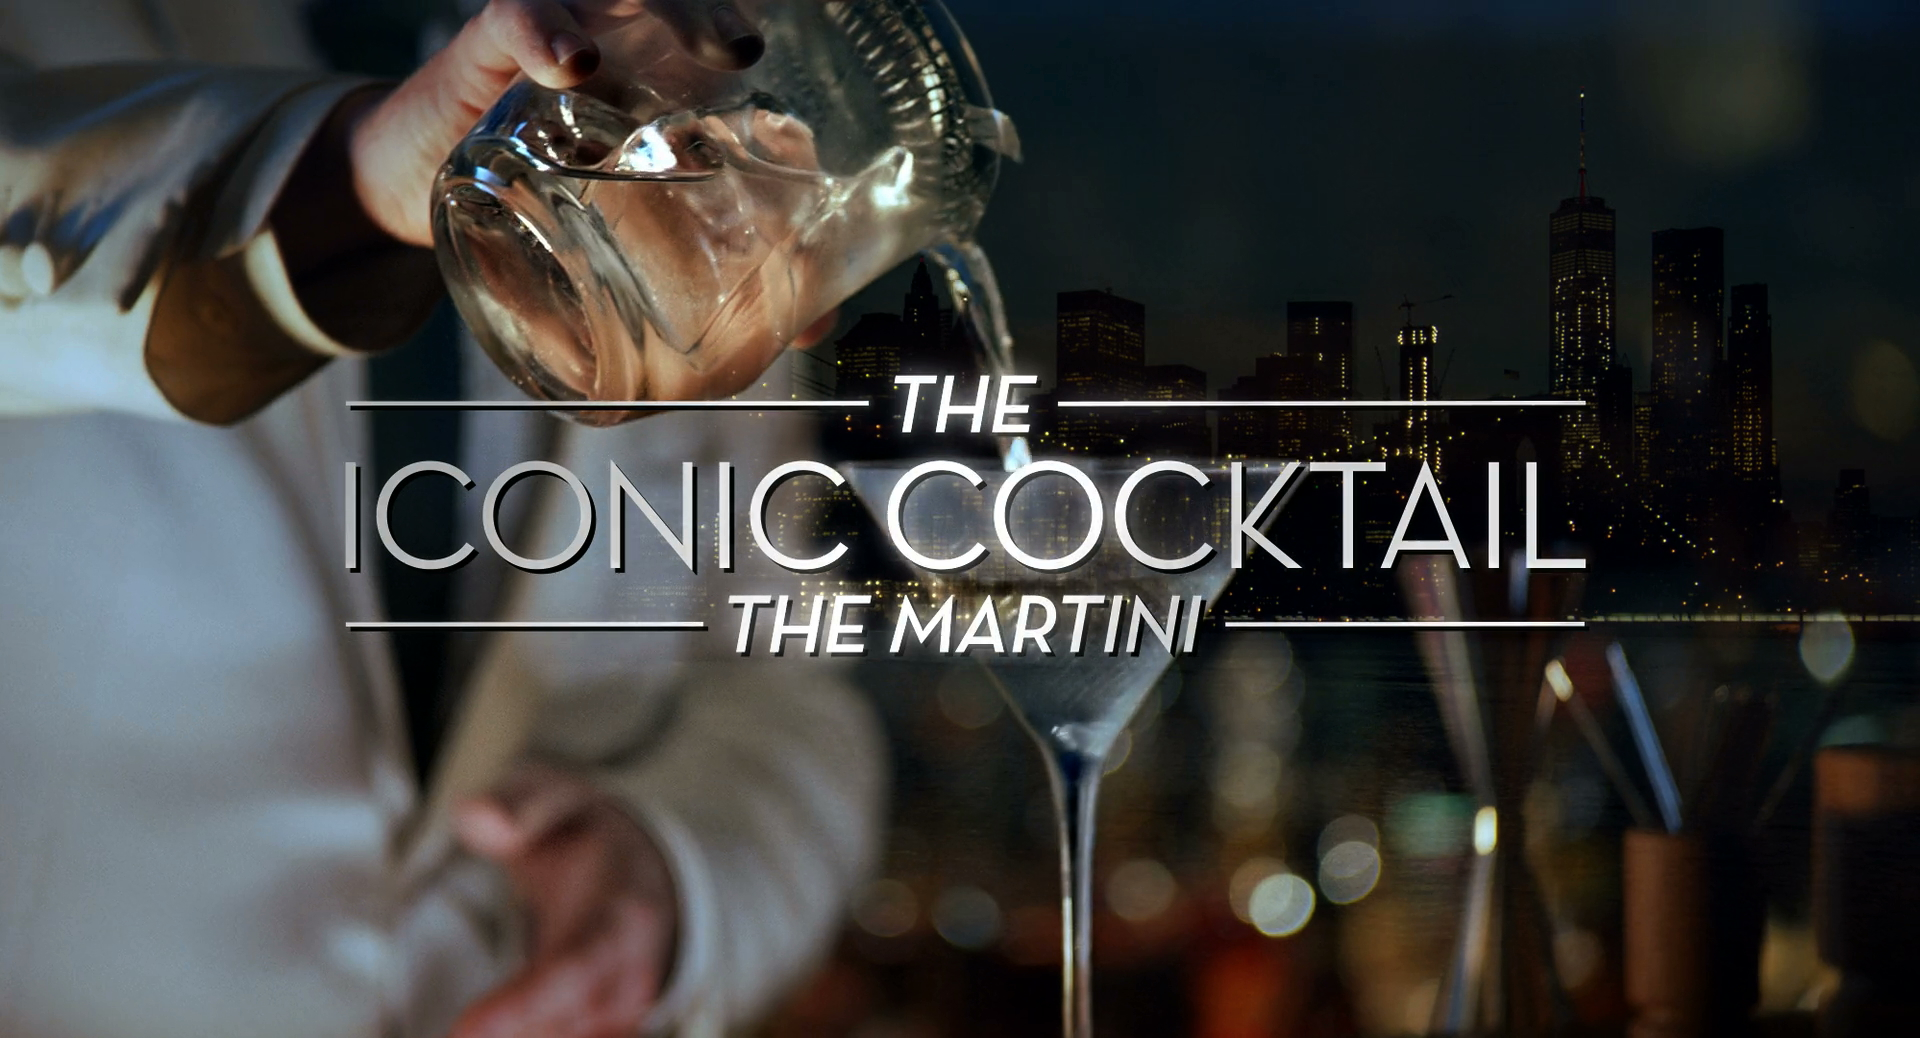 The Iconic Cocktail The Martini